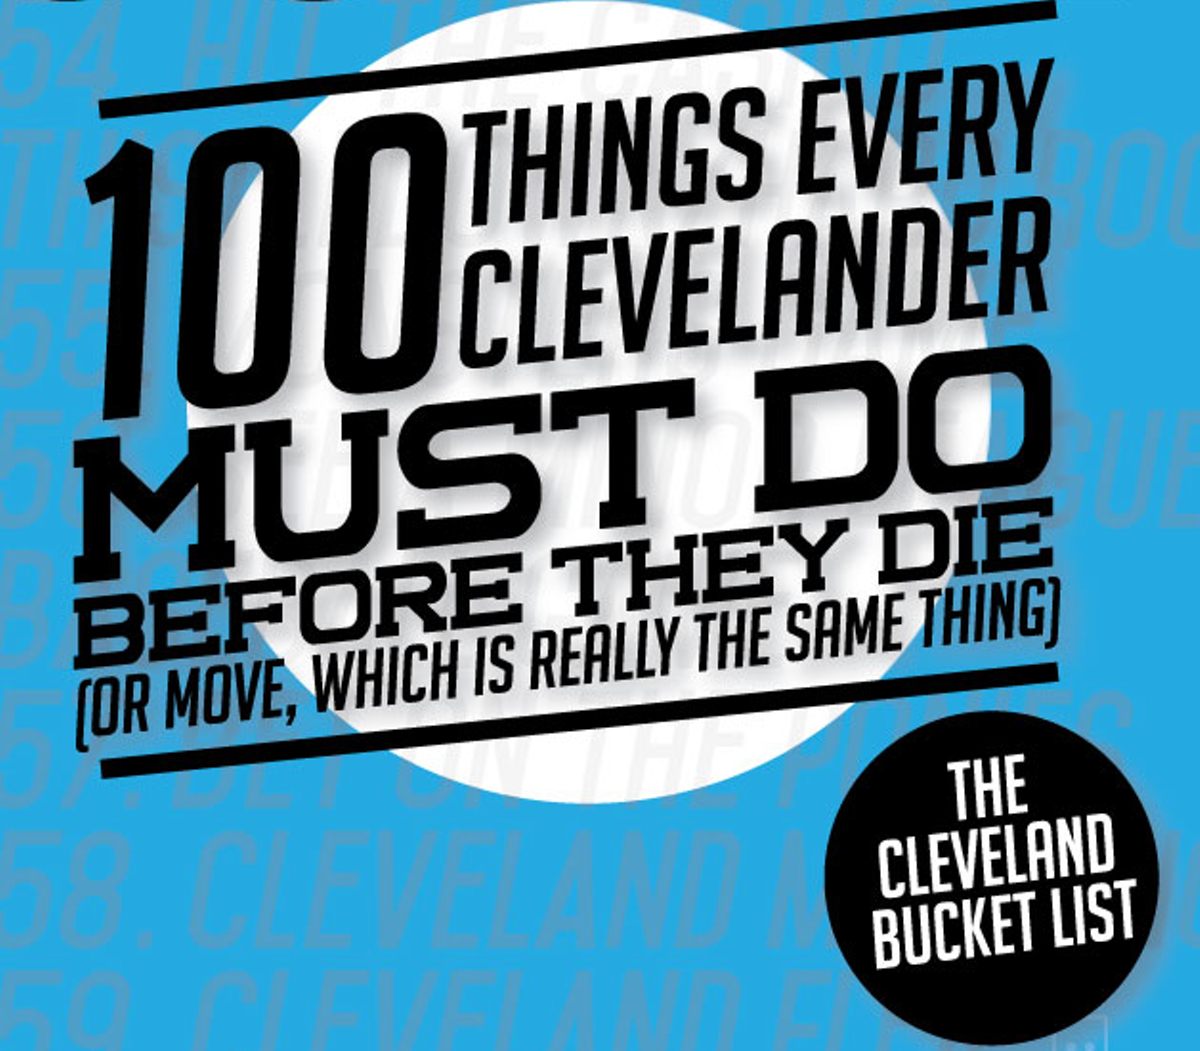 The Cleveland Bucket List News Features Cleveland Scene - 10 things to see and do in cleveland